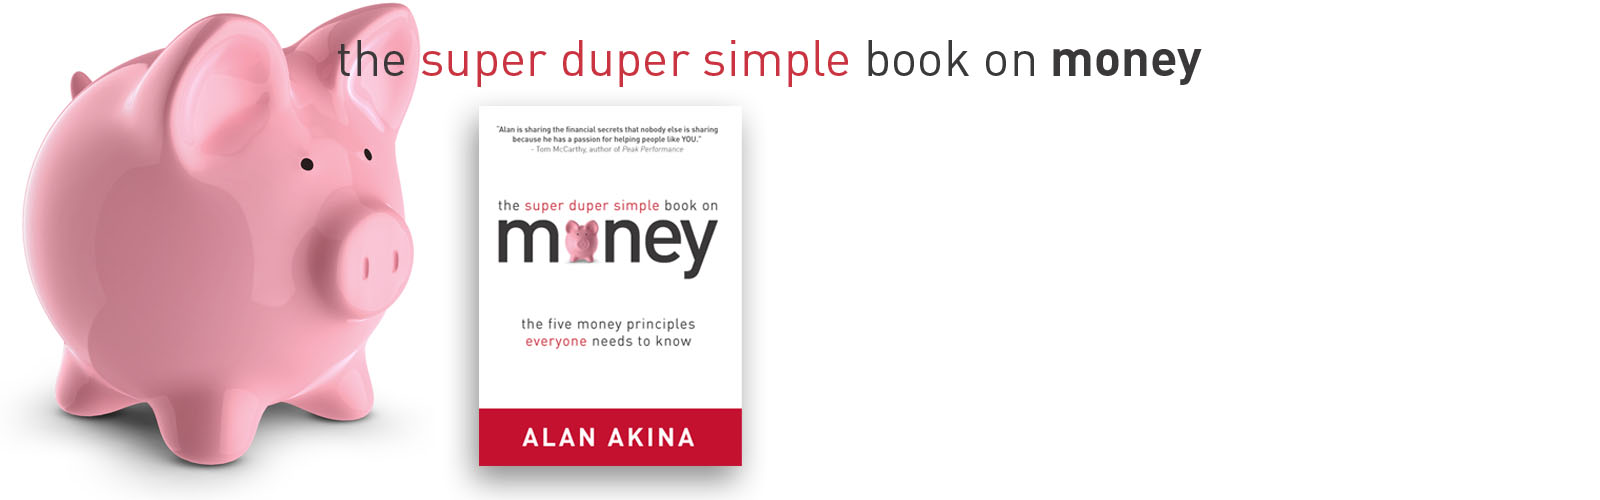 FREE eBOOK: THE SUPER DUPER SIMPLE BOOK ON MONEY